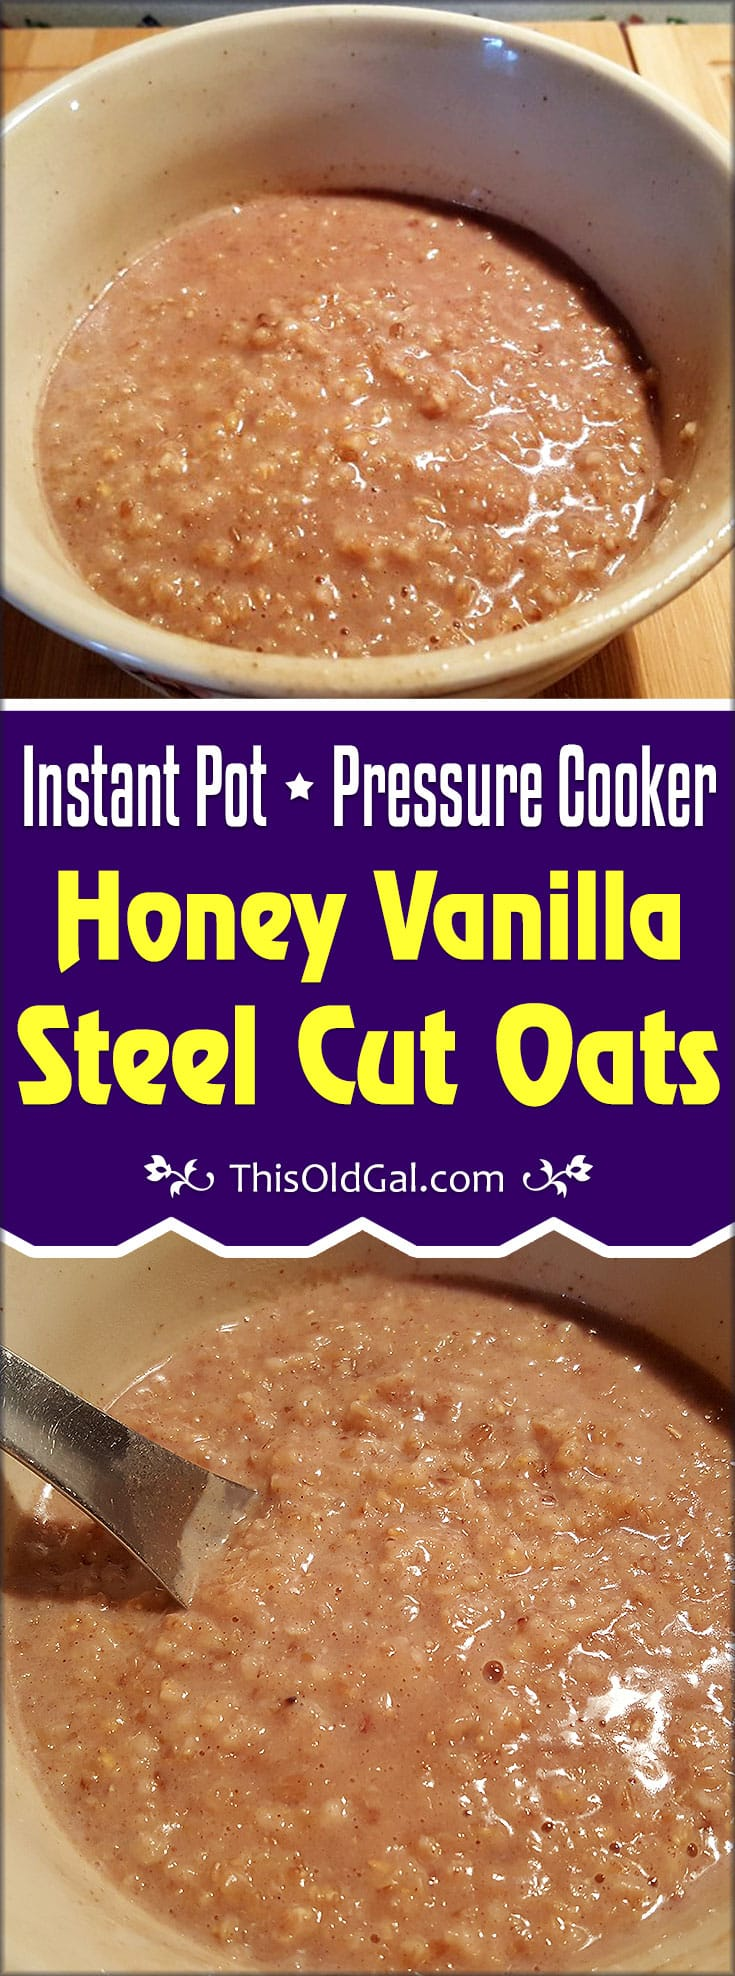 Pressure Cooker Honey Vanilla Steel Cut Oats